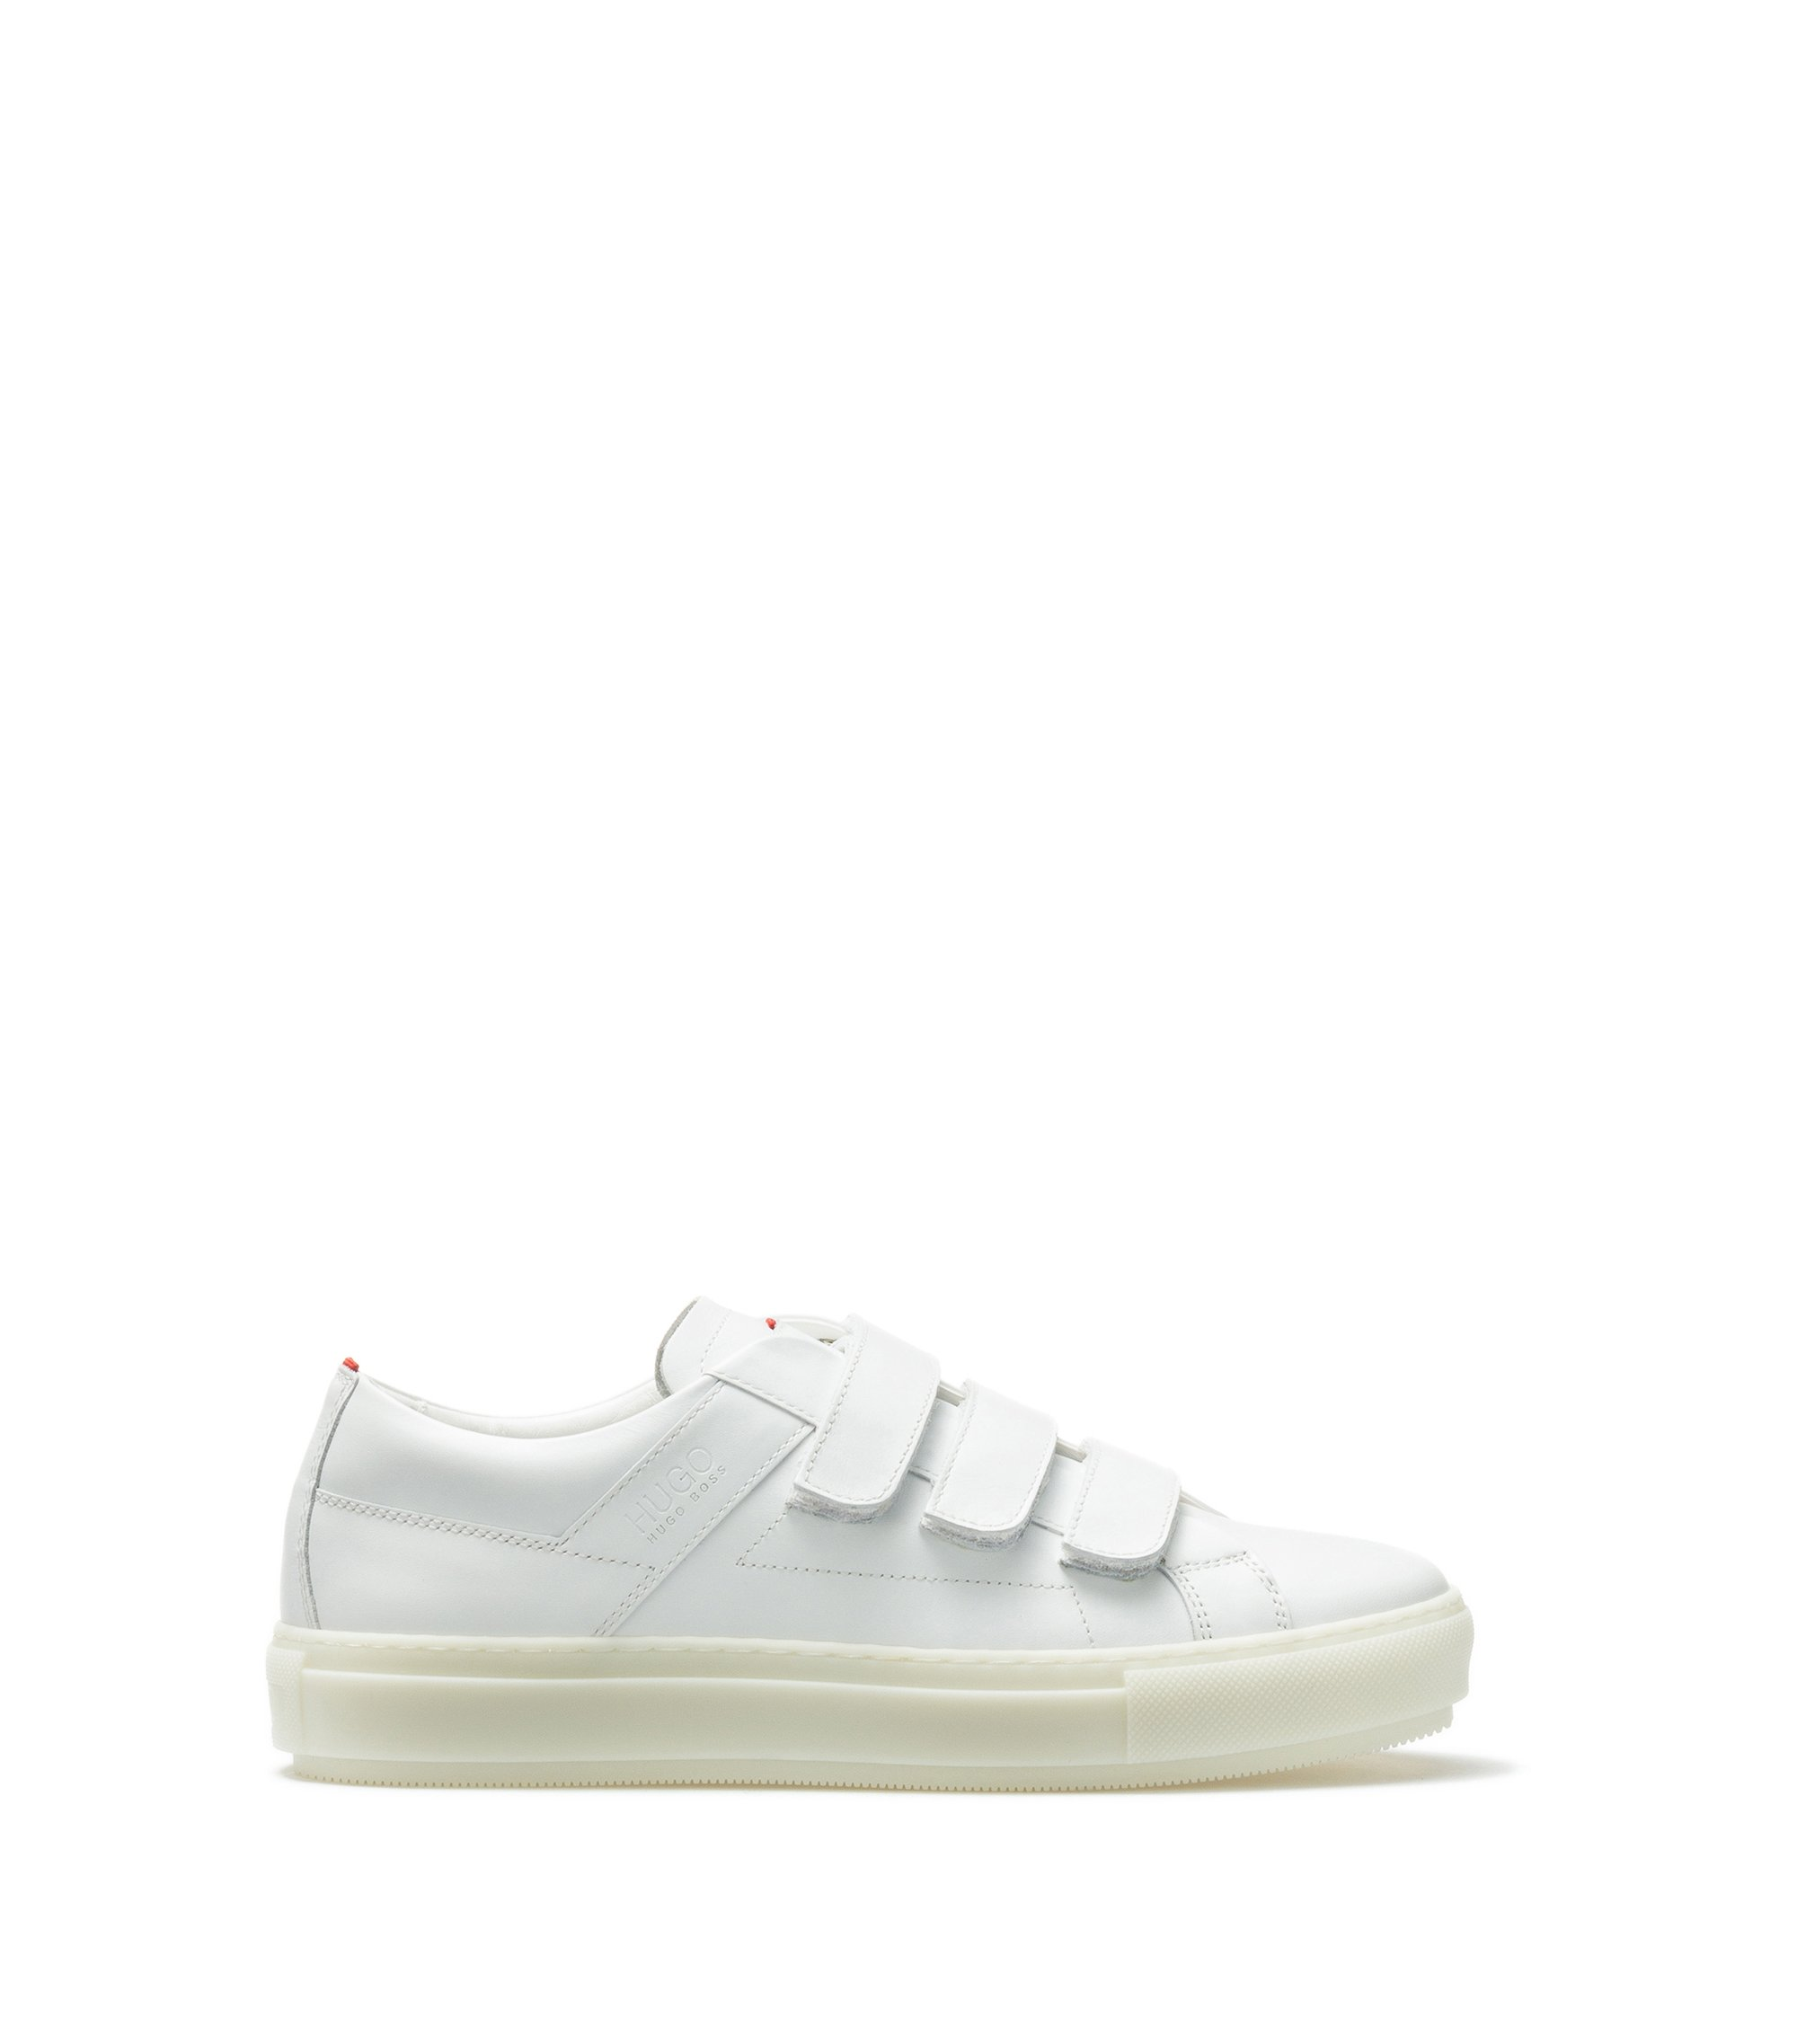 Leather trainers with triple touch-fastening straps, White